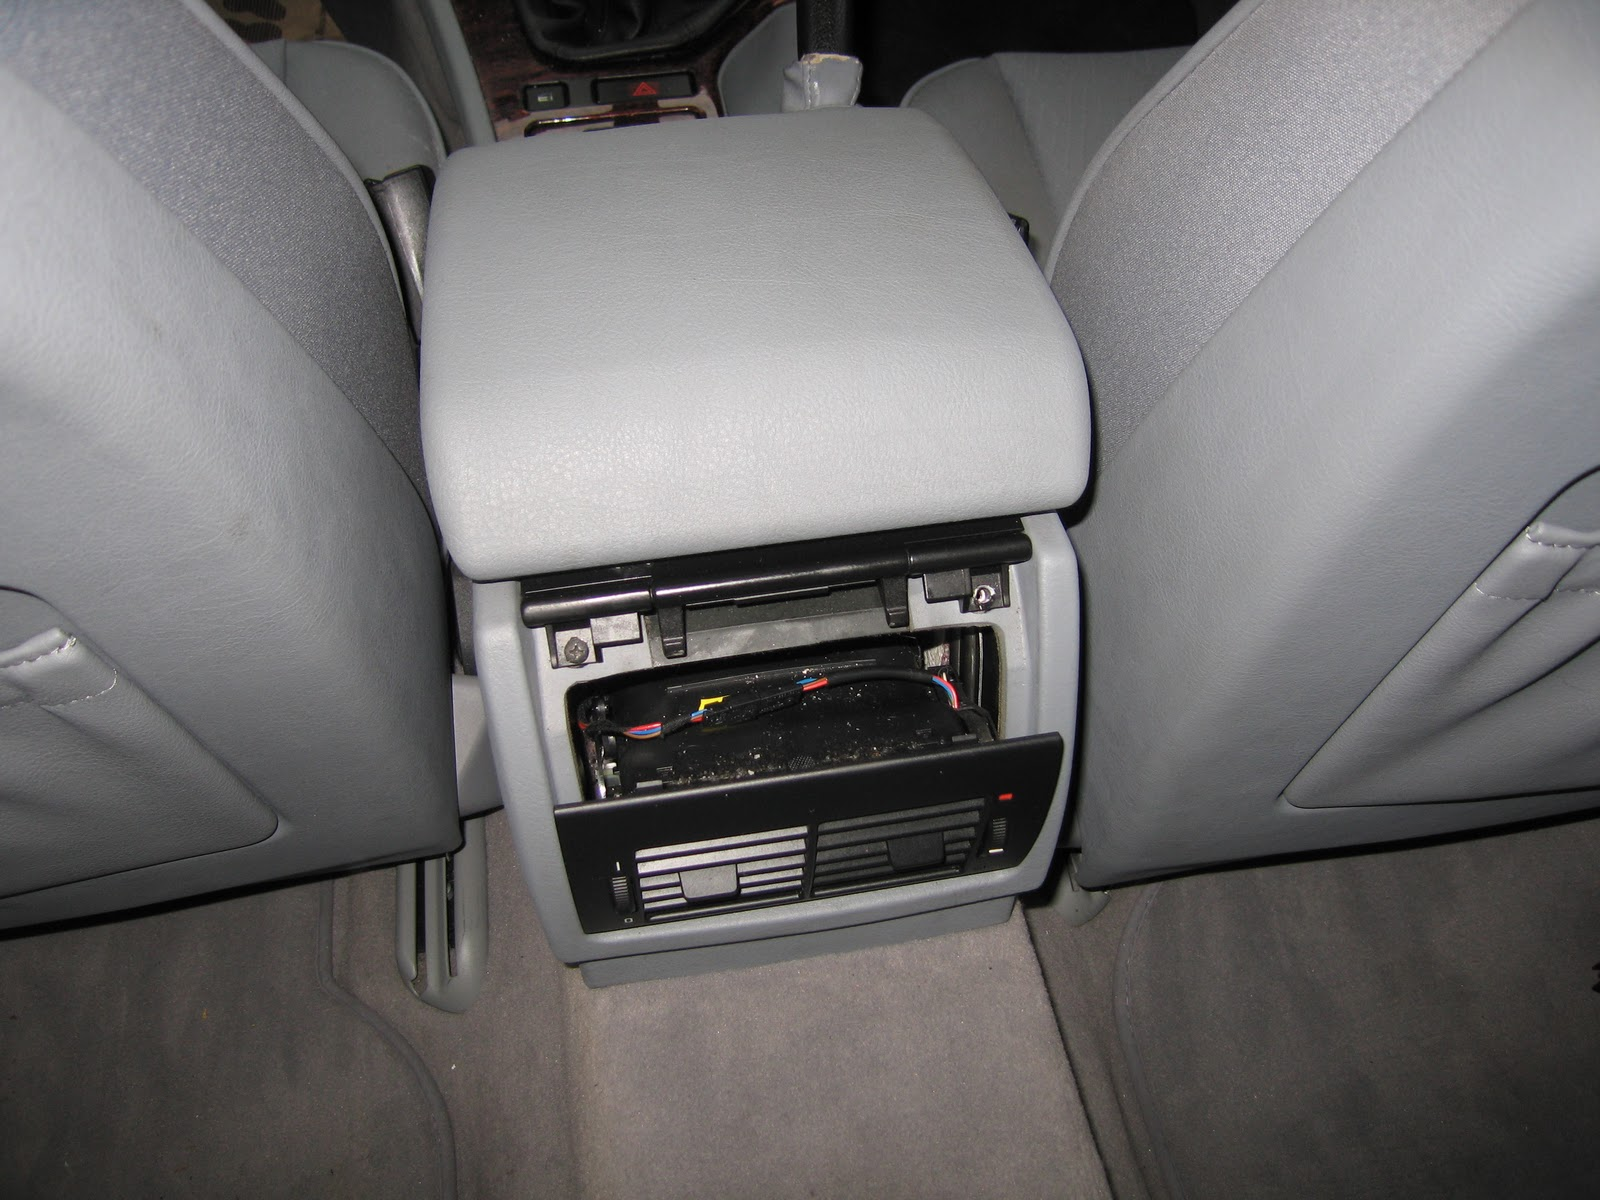 Bmw E46 Head Unit Wiring Diagram Find Image Into This Blog For Guide